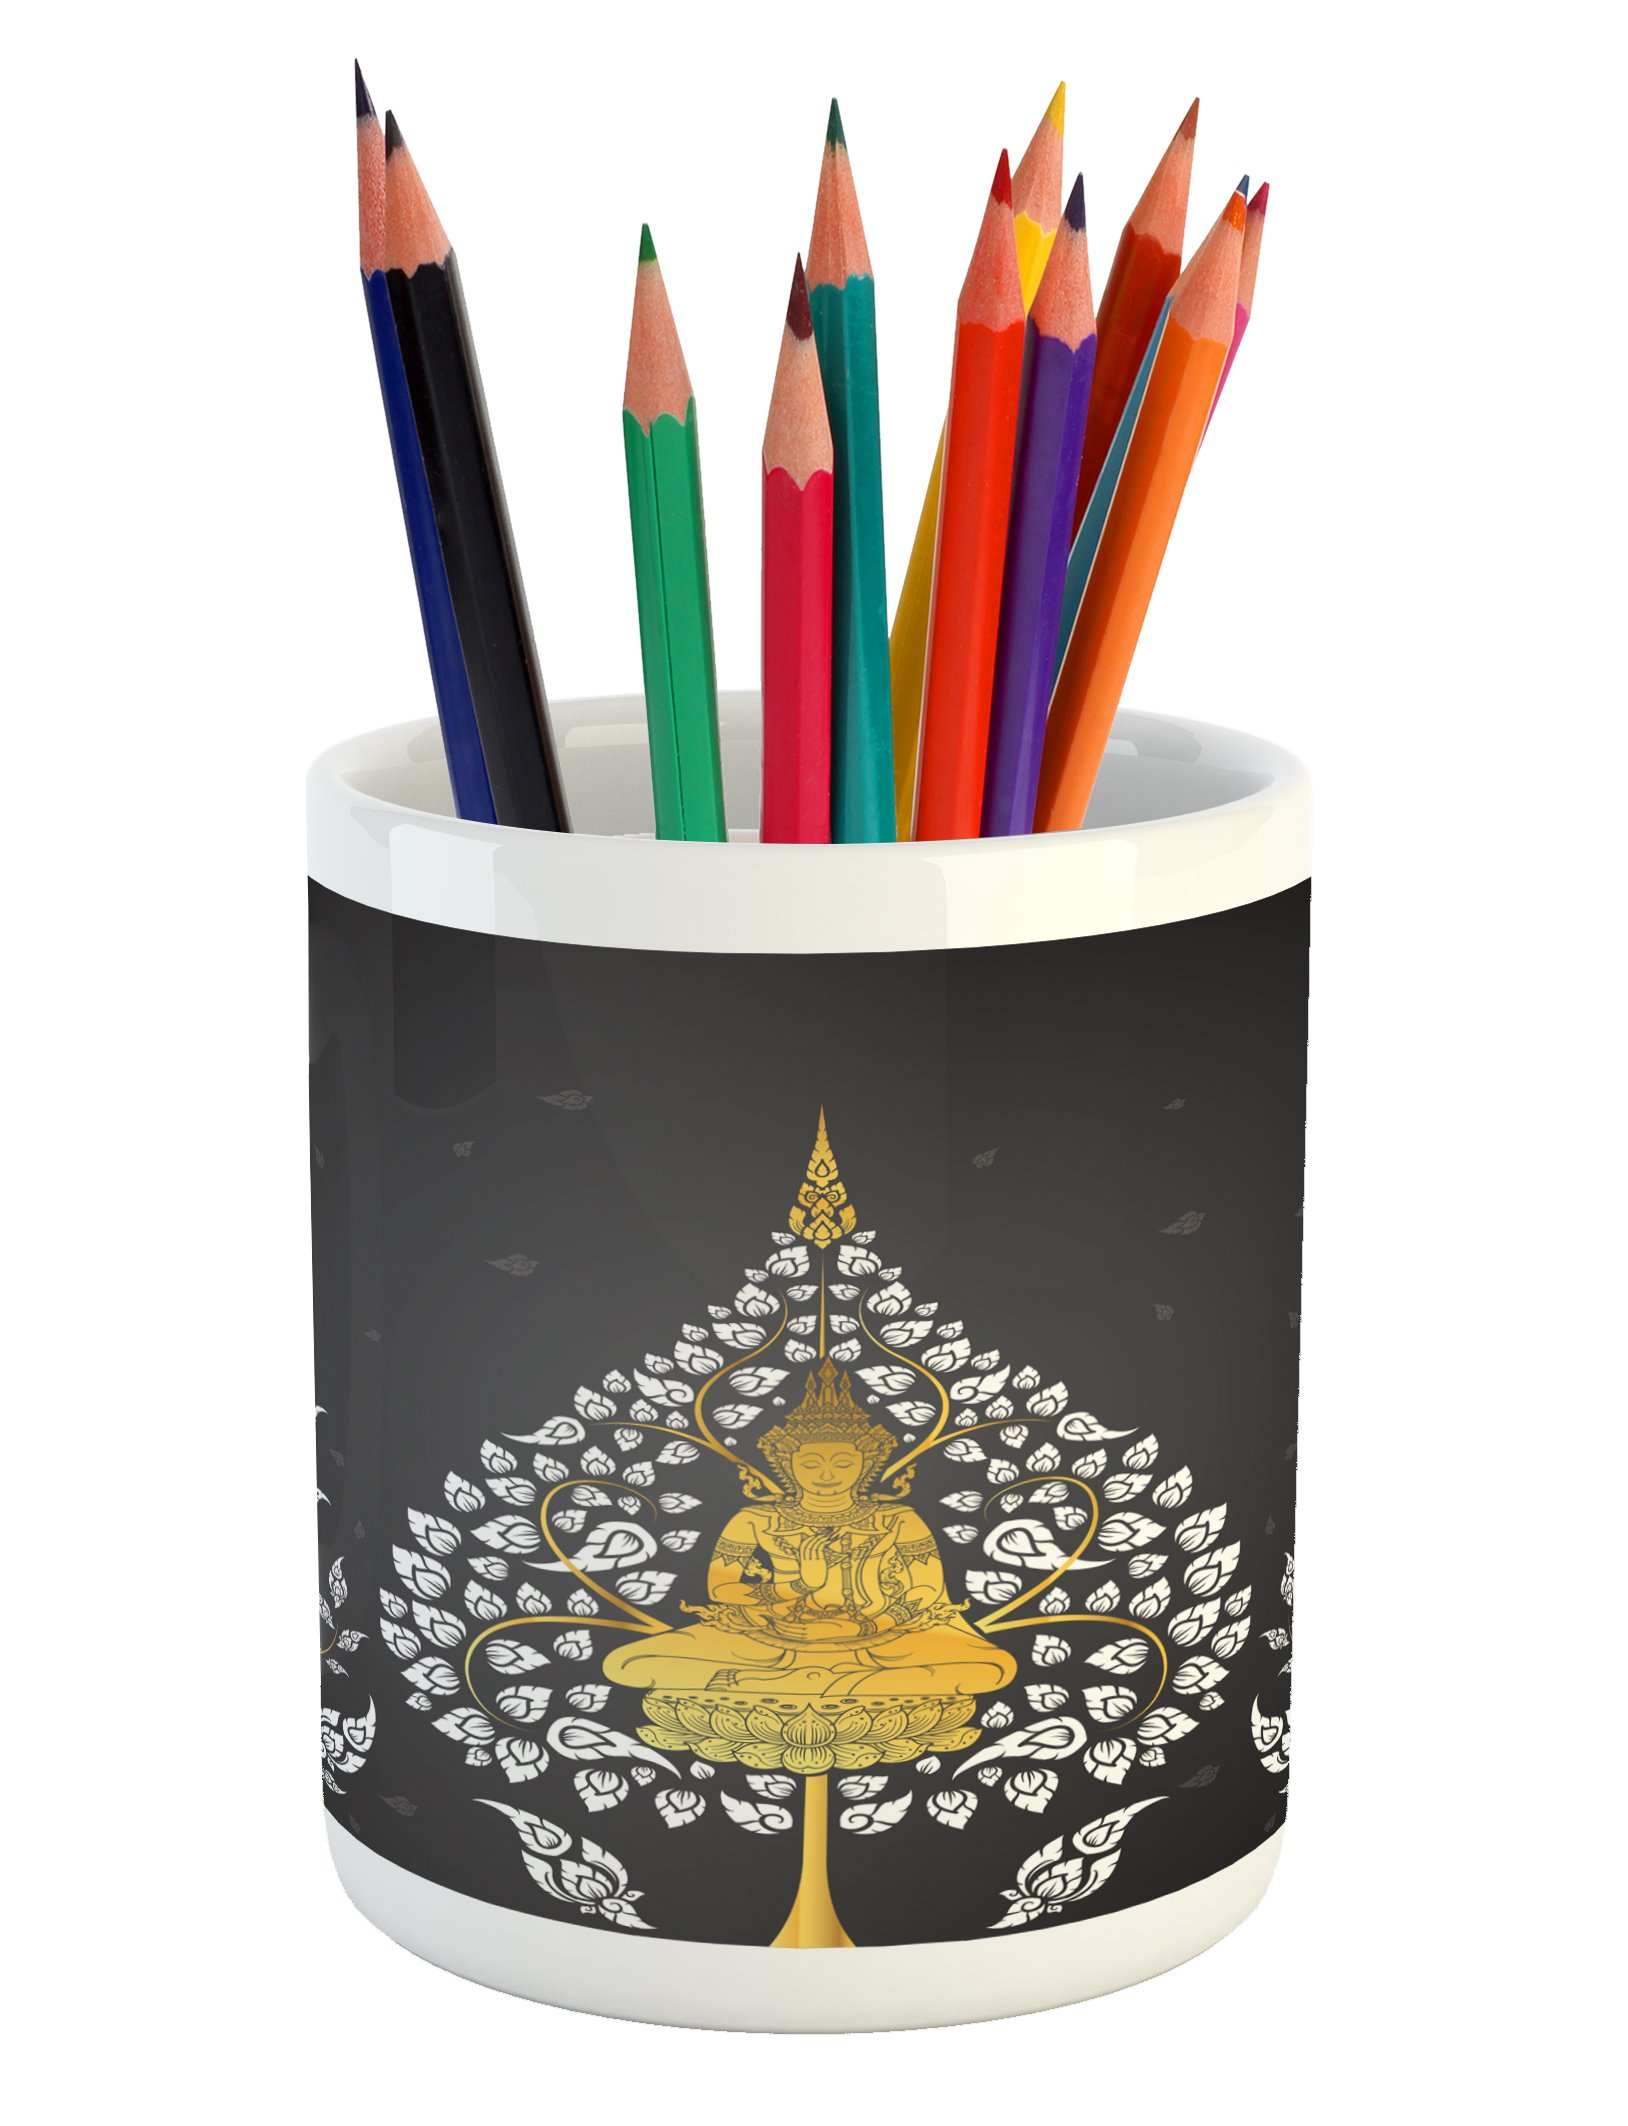 Lunarable Asian Pencil Pen Holder, Ancient Religious Thai Character with Floral Elements Meditation, Printed Ceramic Pencil Pen Holder for Desk Office Accessory, Charcoal Grey White Yellow by Lunarable